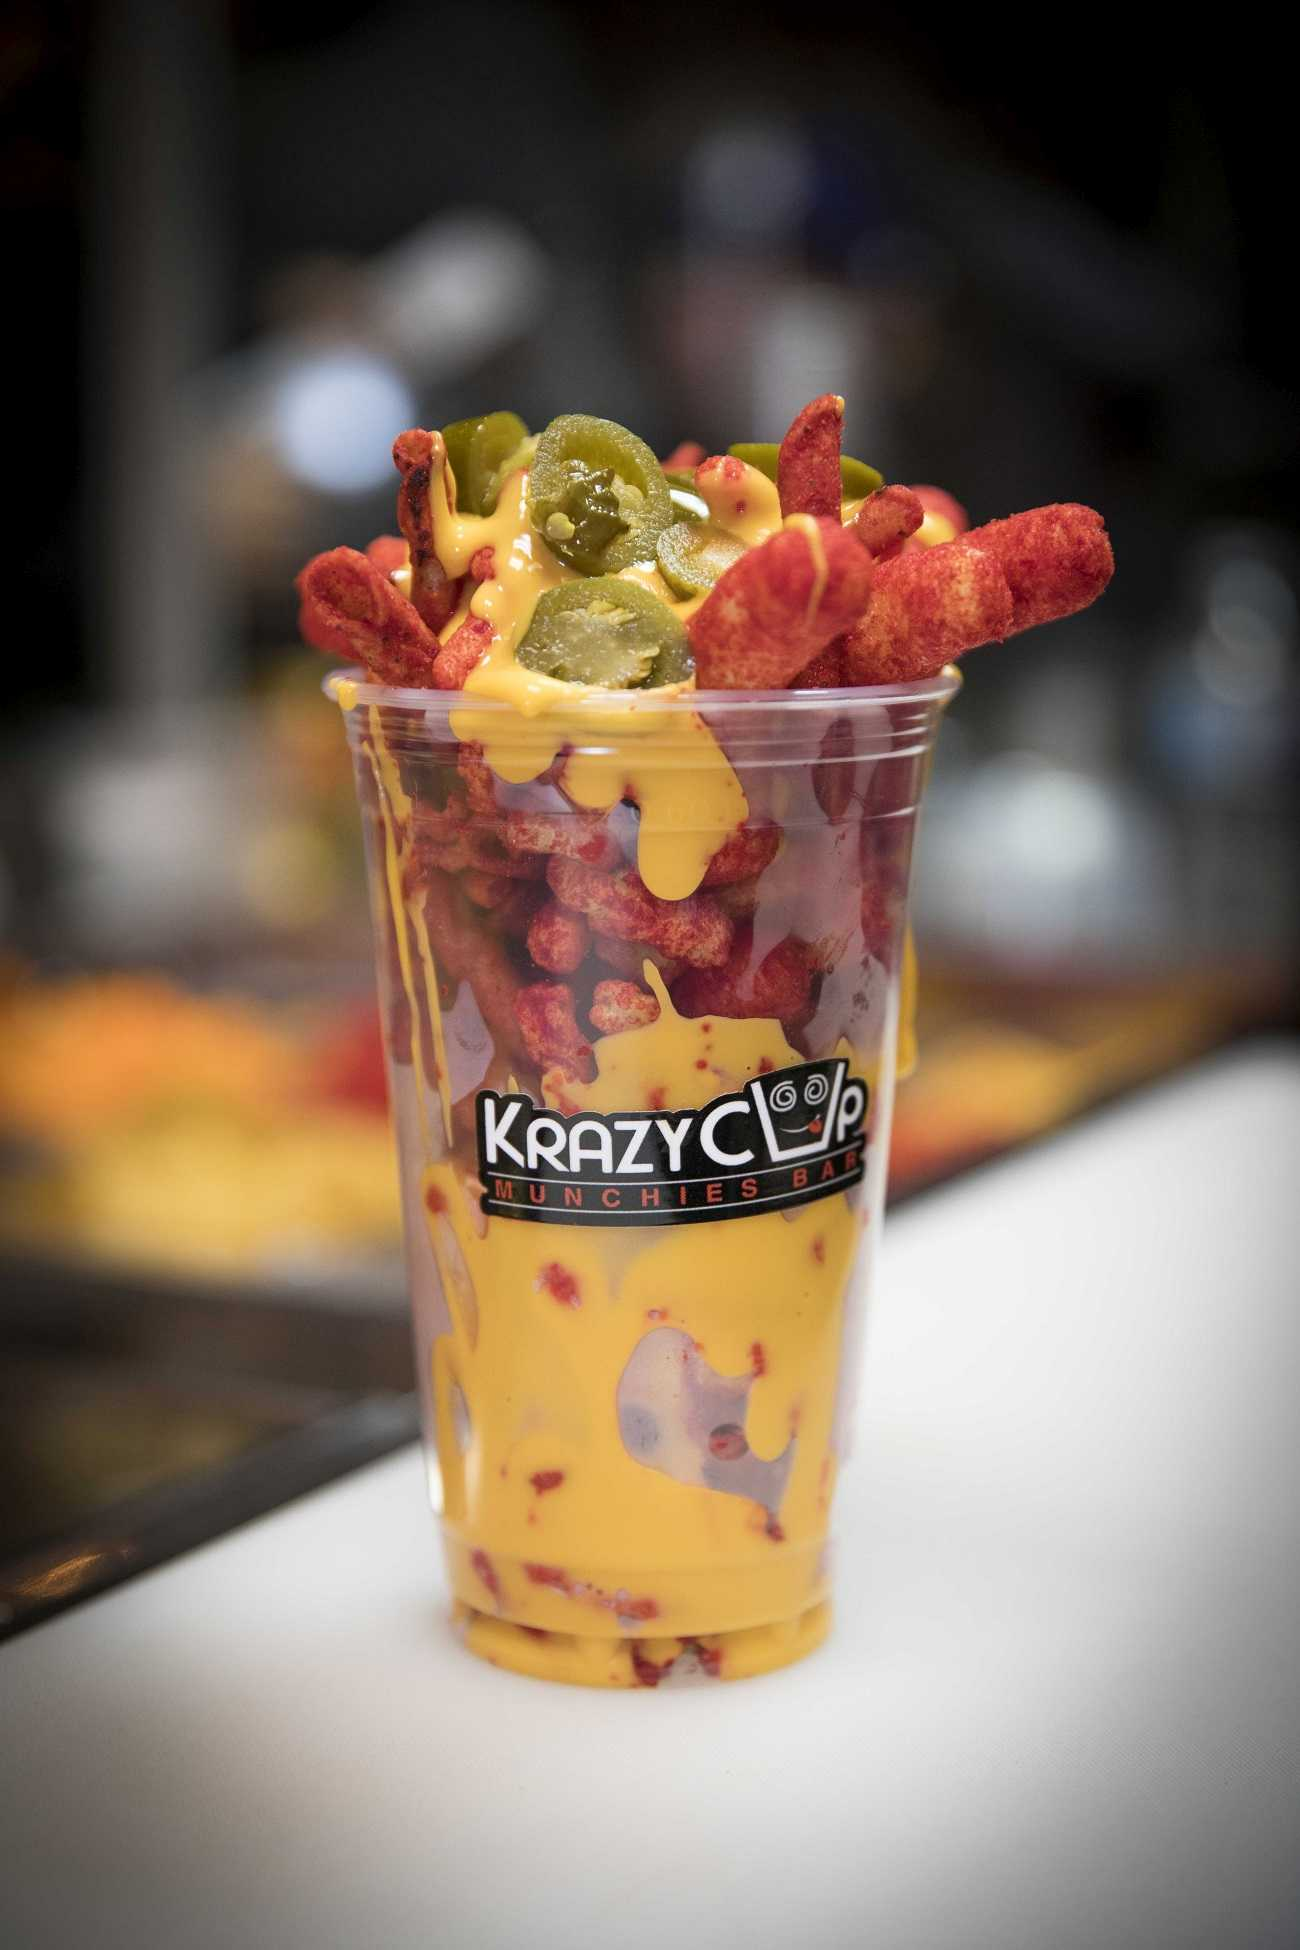 Create Your Own Home Krazy Cup Munchies Bar